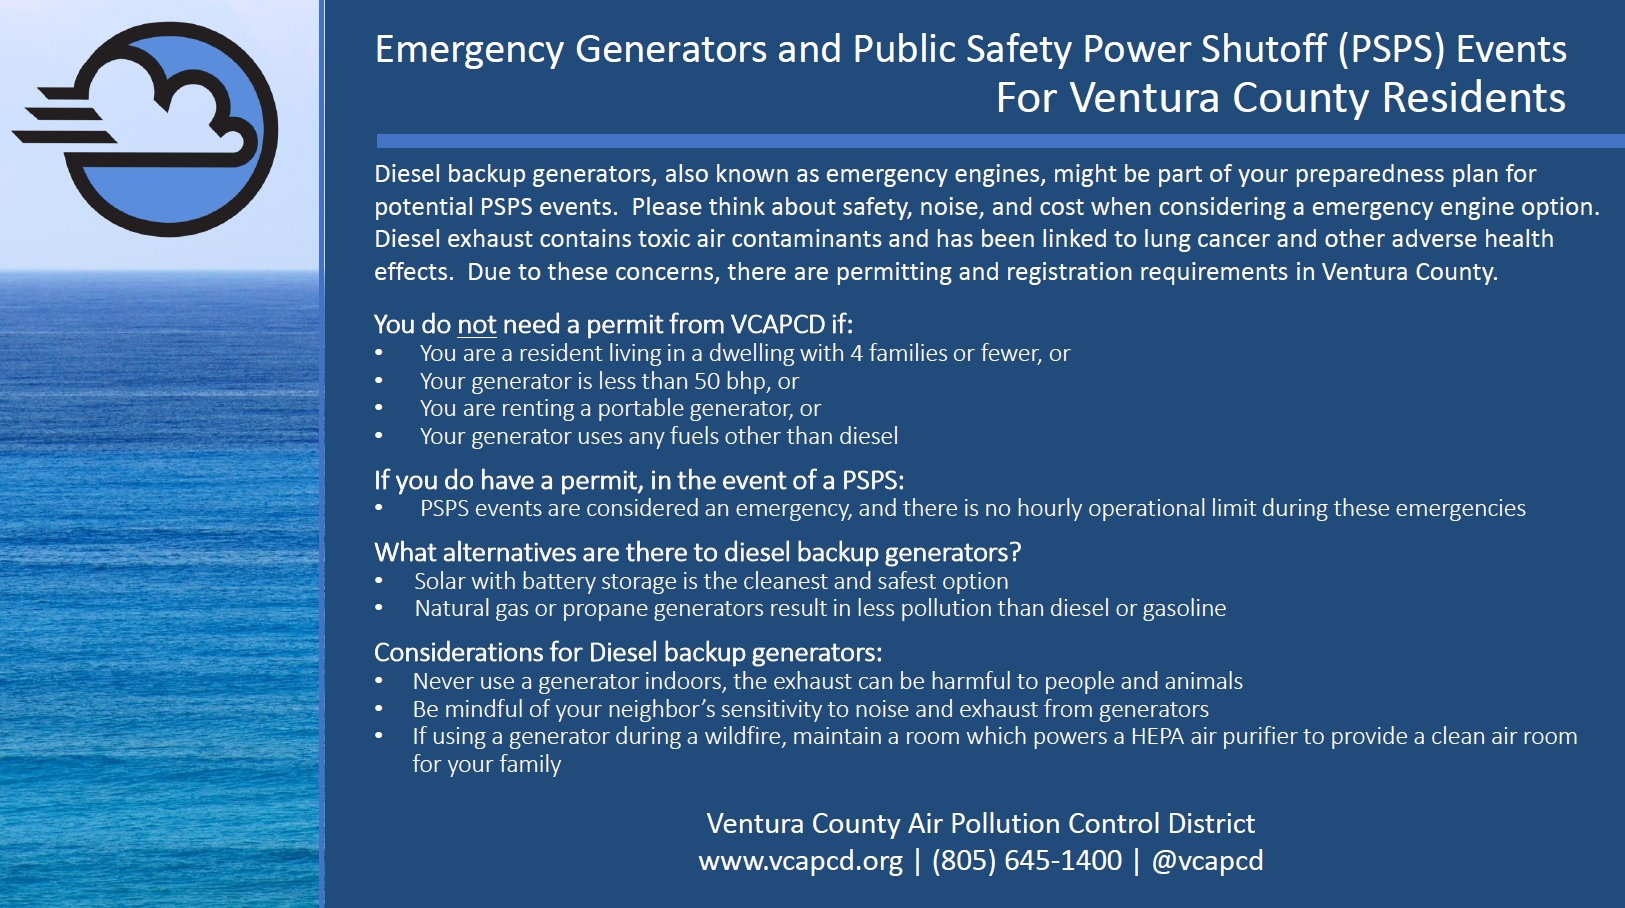 Air District's Emergency Generator Requirements during PSPS Events